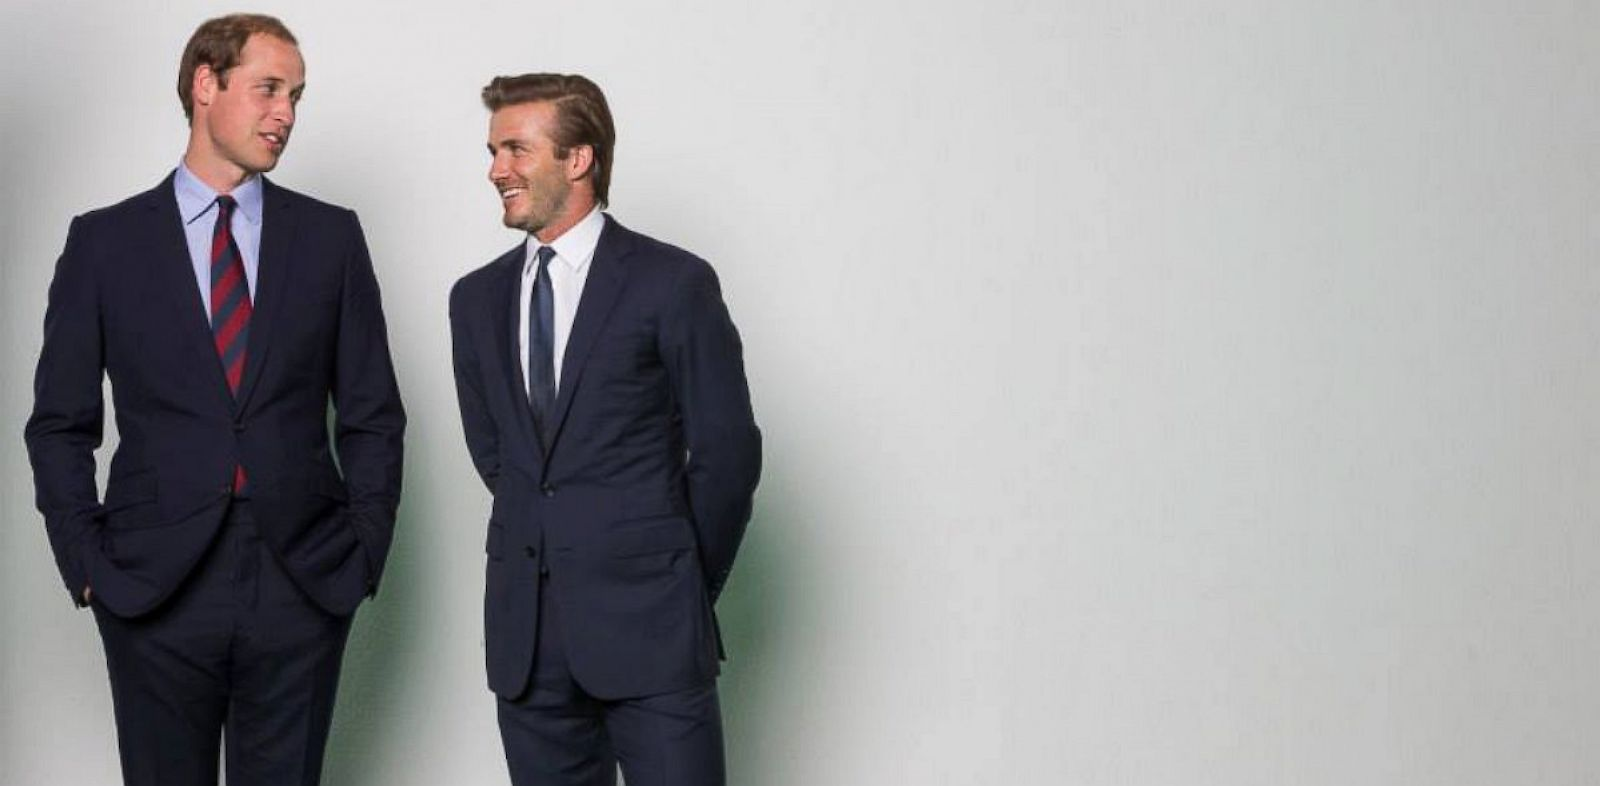 PHOTO: The Duke of Cambridge and David Beckham film a new WildAid PSA in London.